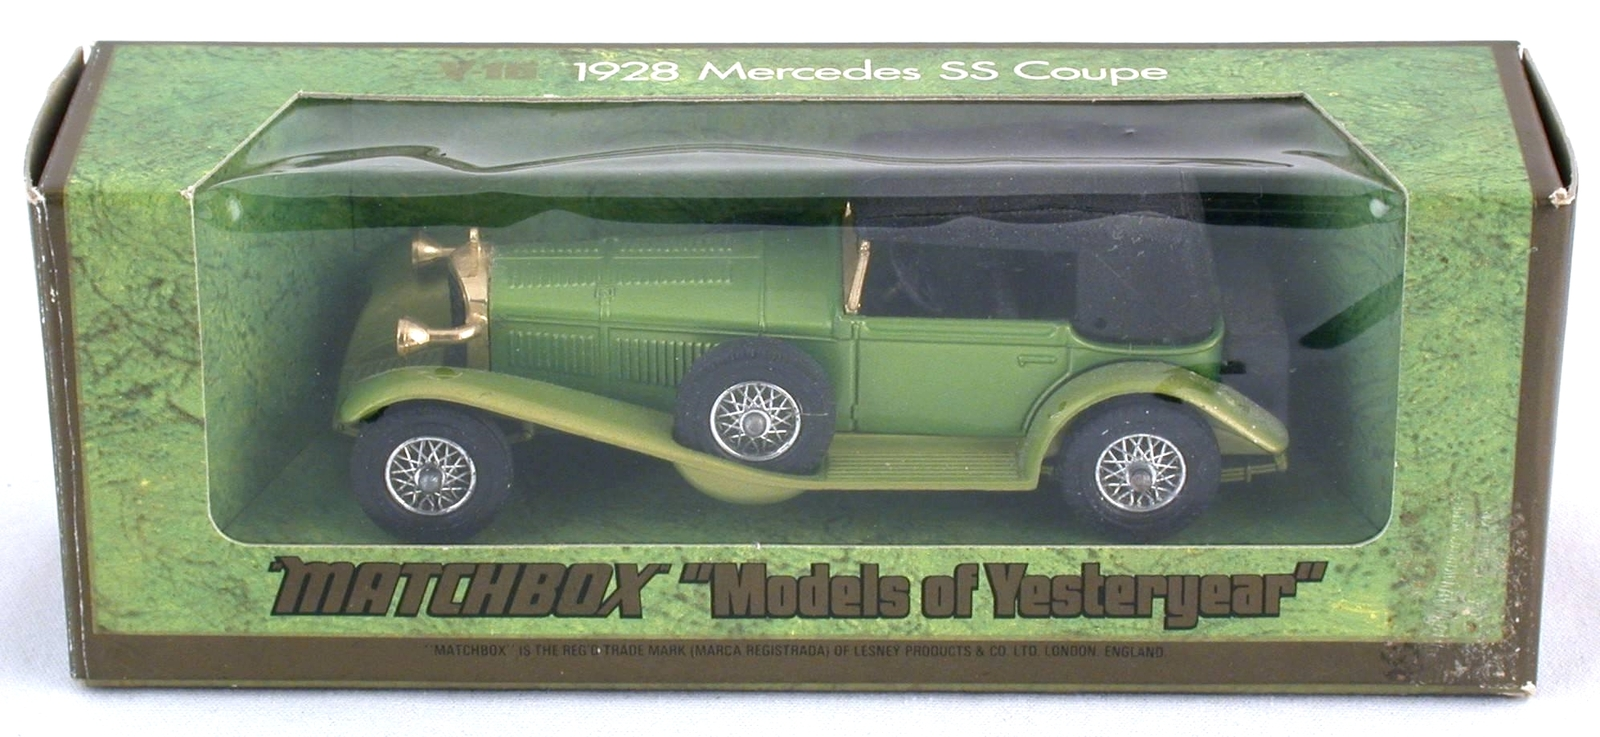 Matchbox Yesteryear Y-16 1928 Mercedes SS Coupe Lesney Diecast 45:1